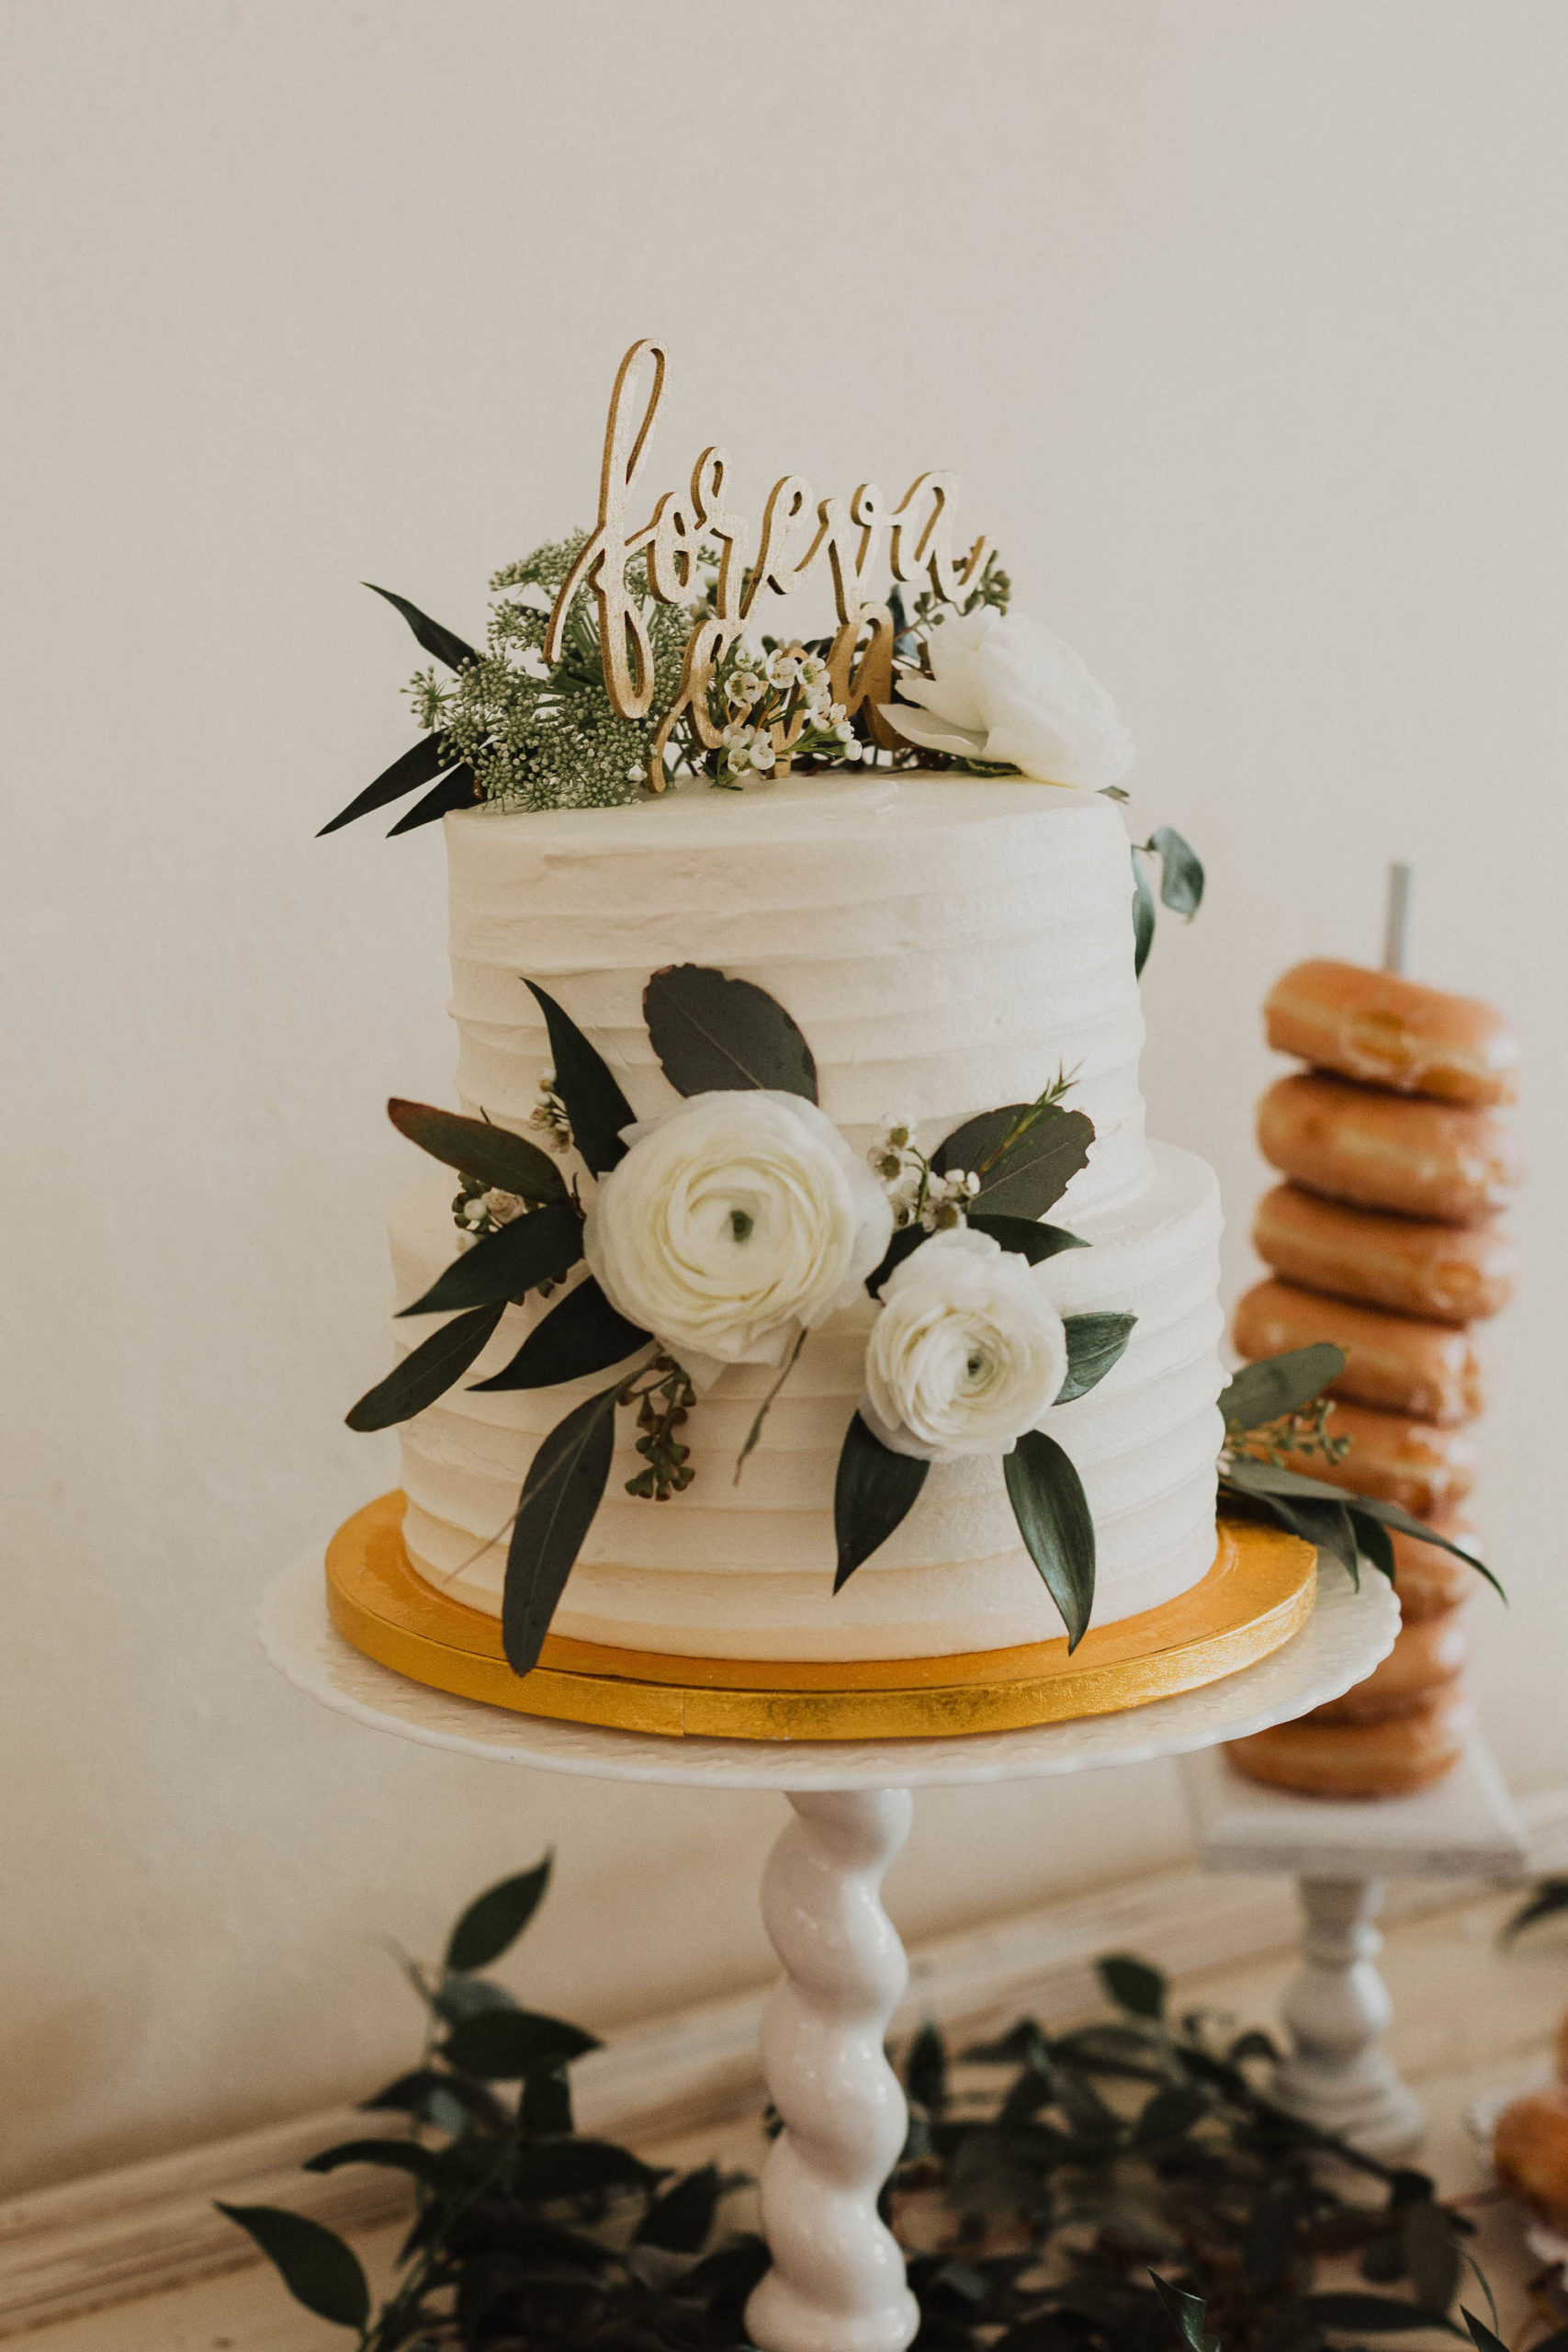 Two Tier Simple Ruffled Wedding Cake with Garden Roses and Eucalyptus